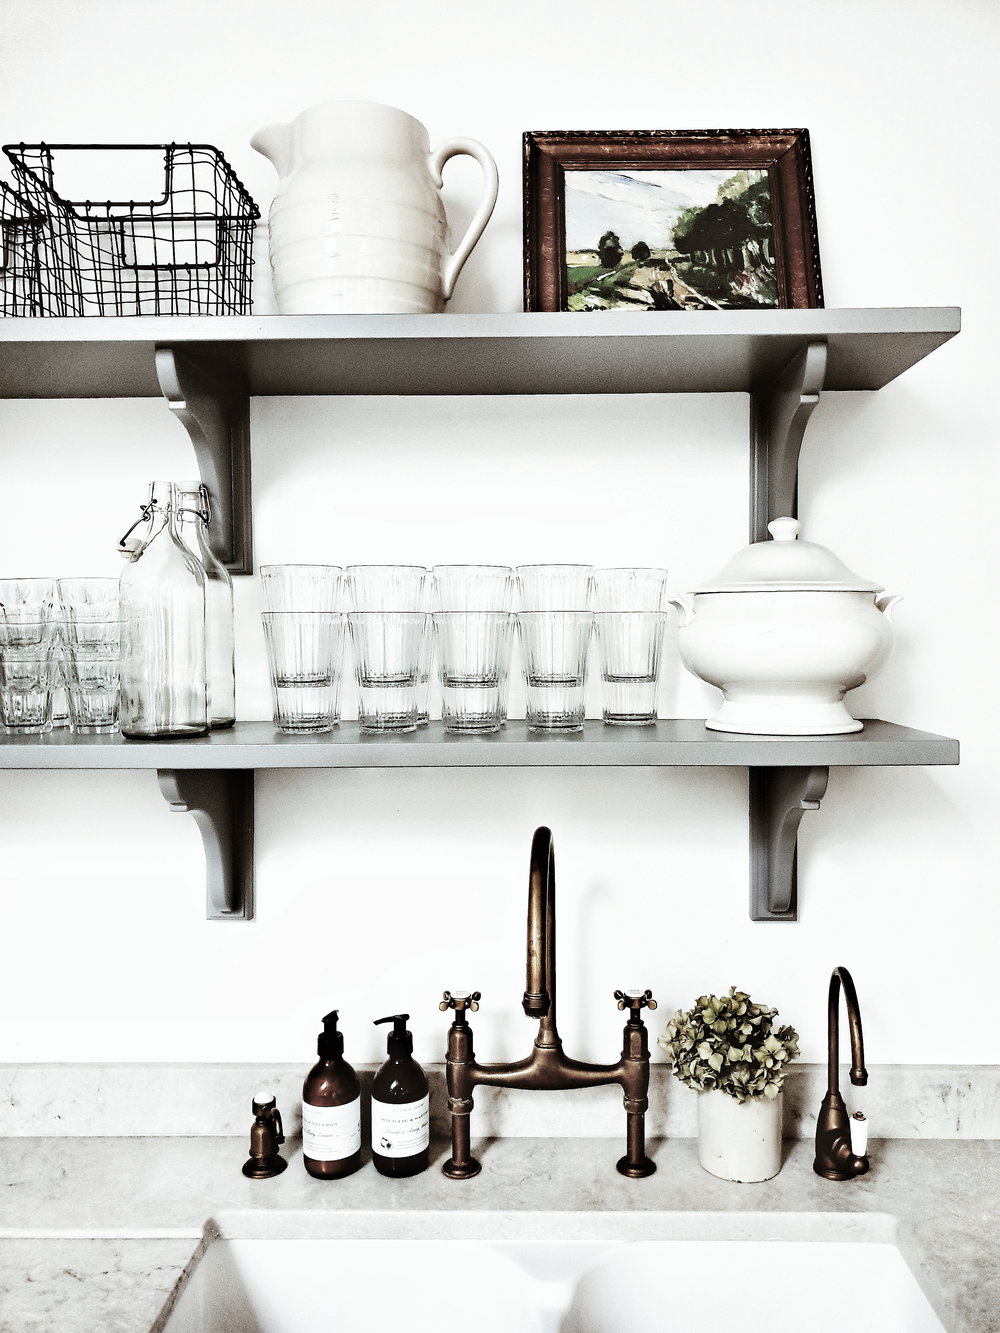 Marble worktops and brass taps add a vintage edge to the